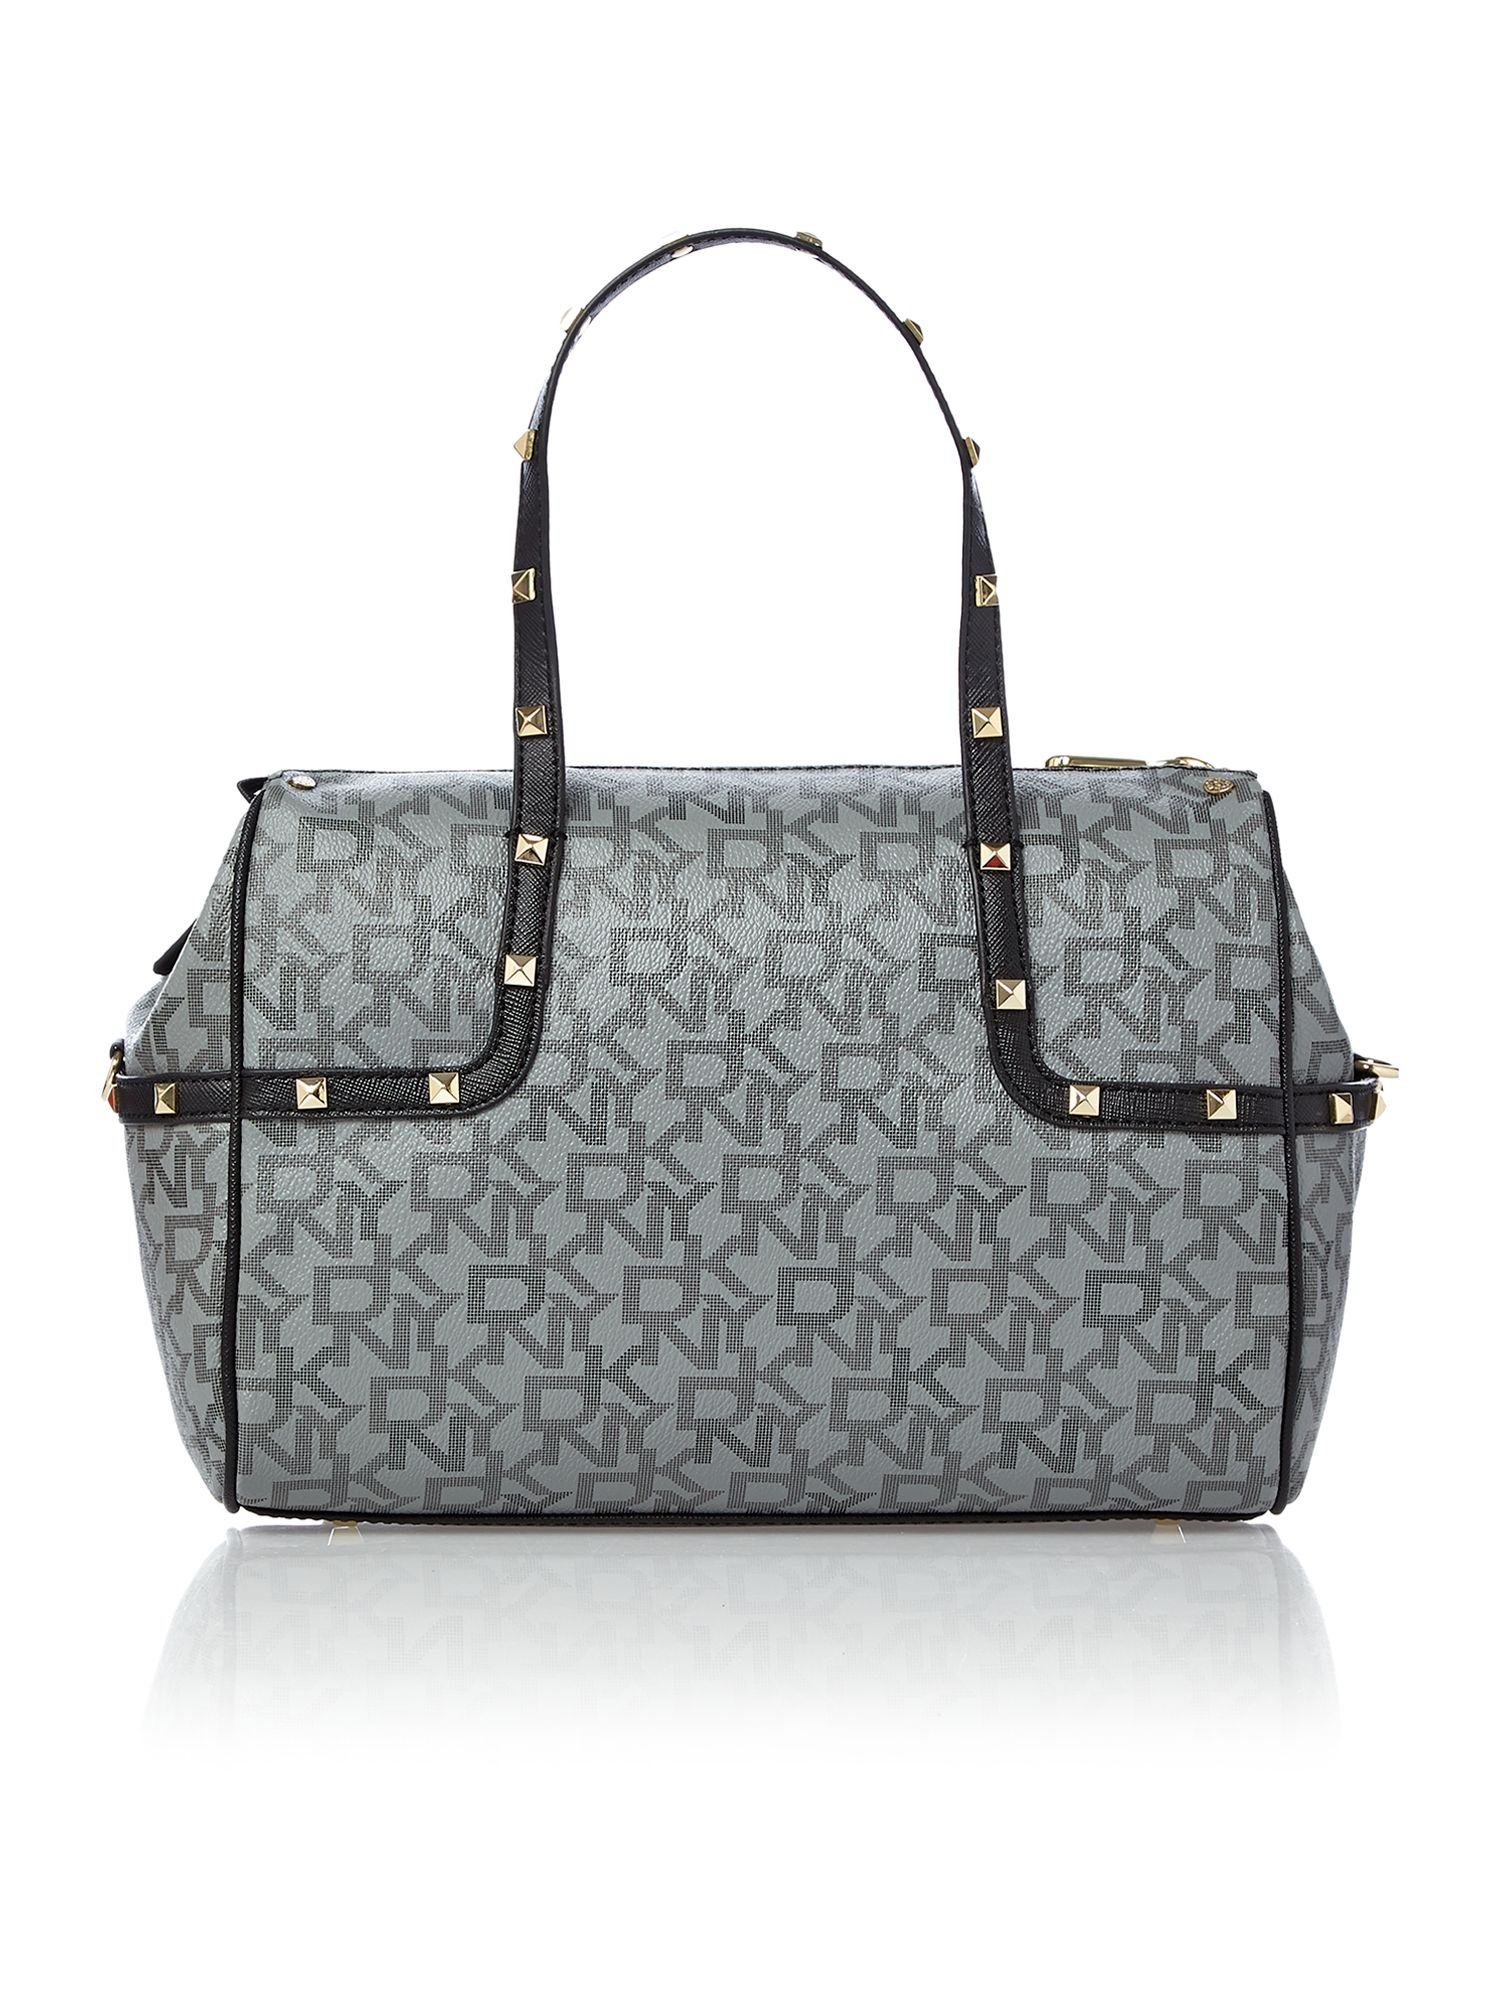 Coated logo black small satchel with studs